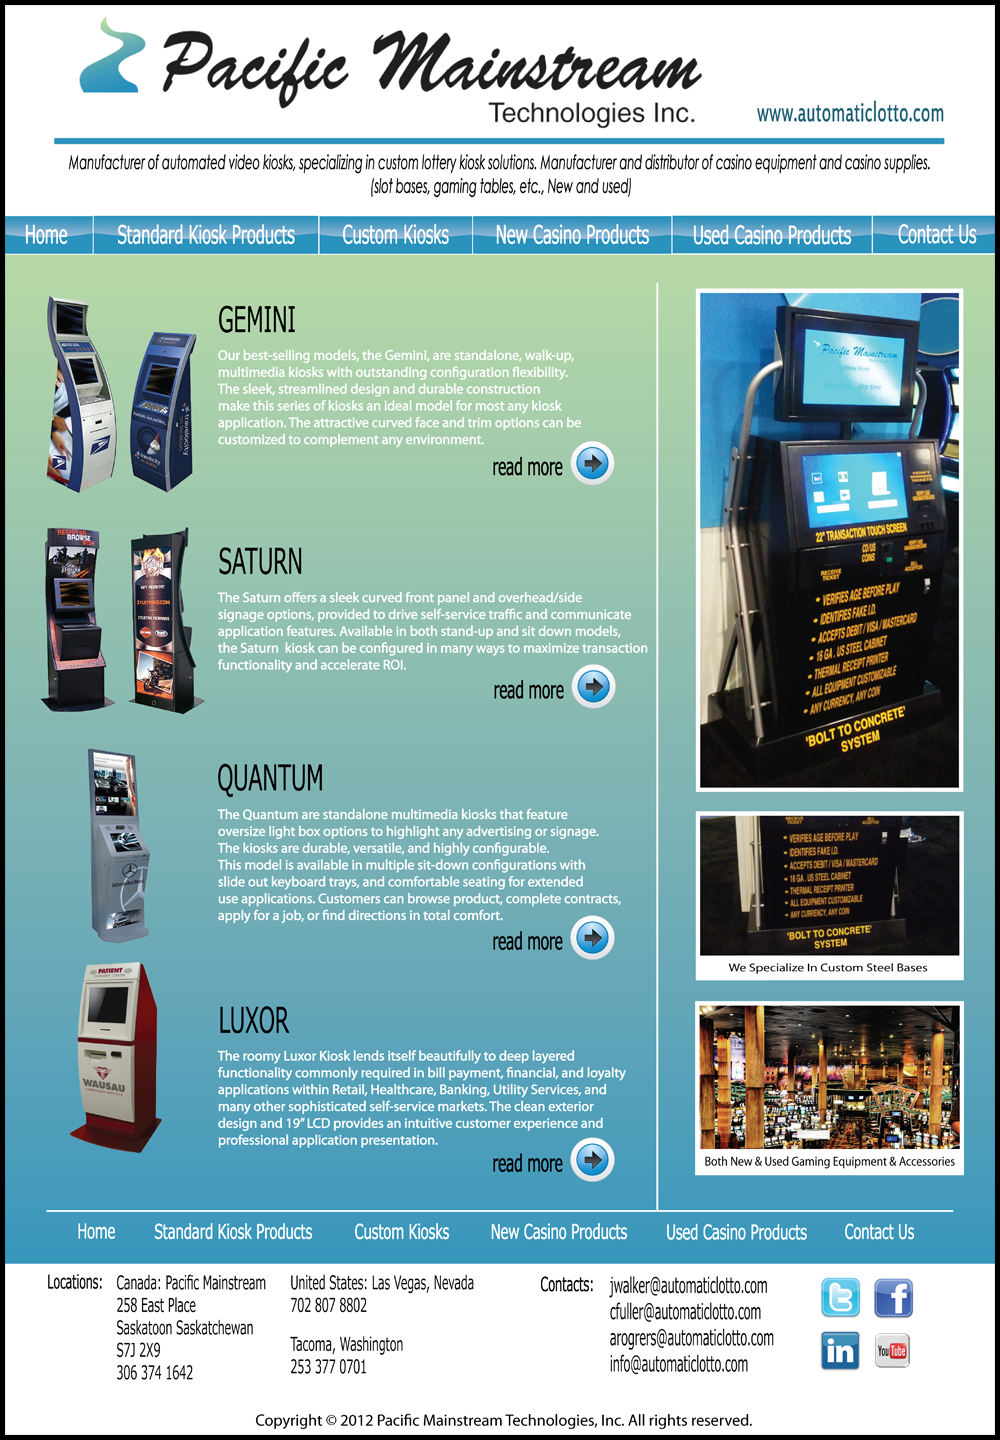 Web Page Design by Lefky - Entry No. 14 in the Web Page Design Contest Fun Web Page Design for Mainstream Pacific Technologies Inc..